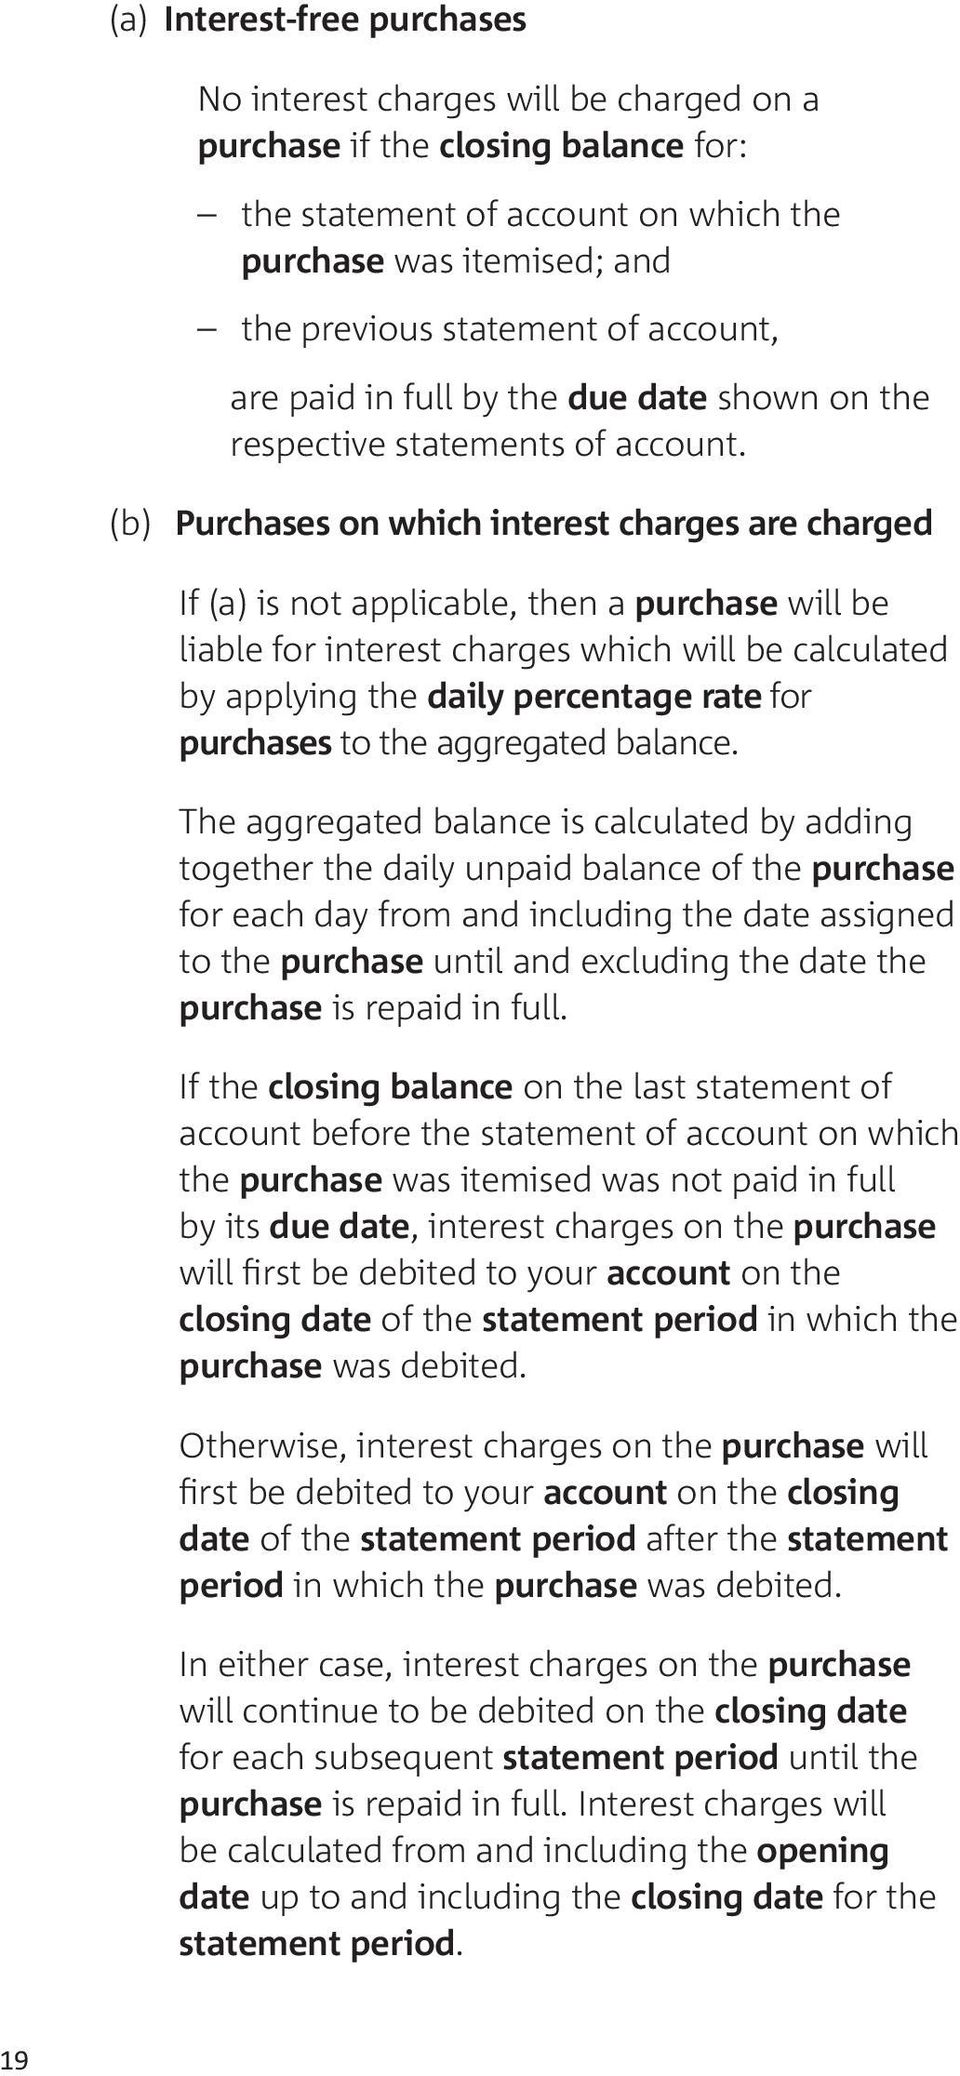 (b) Purchases on which interest charges are charged If (a) is not applicable, then a purchase will be liable for interest charges which will be calculated by applying the daily percentage rate for